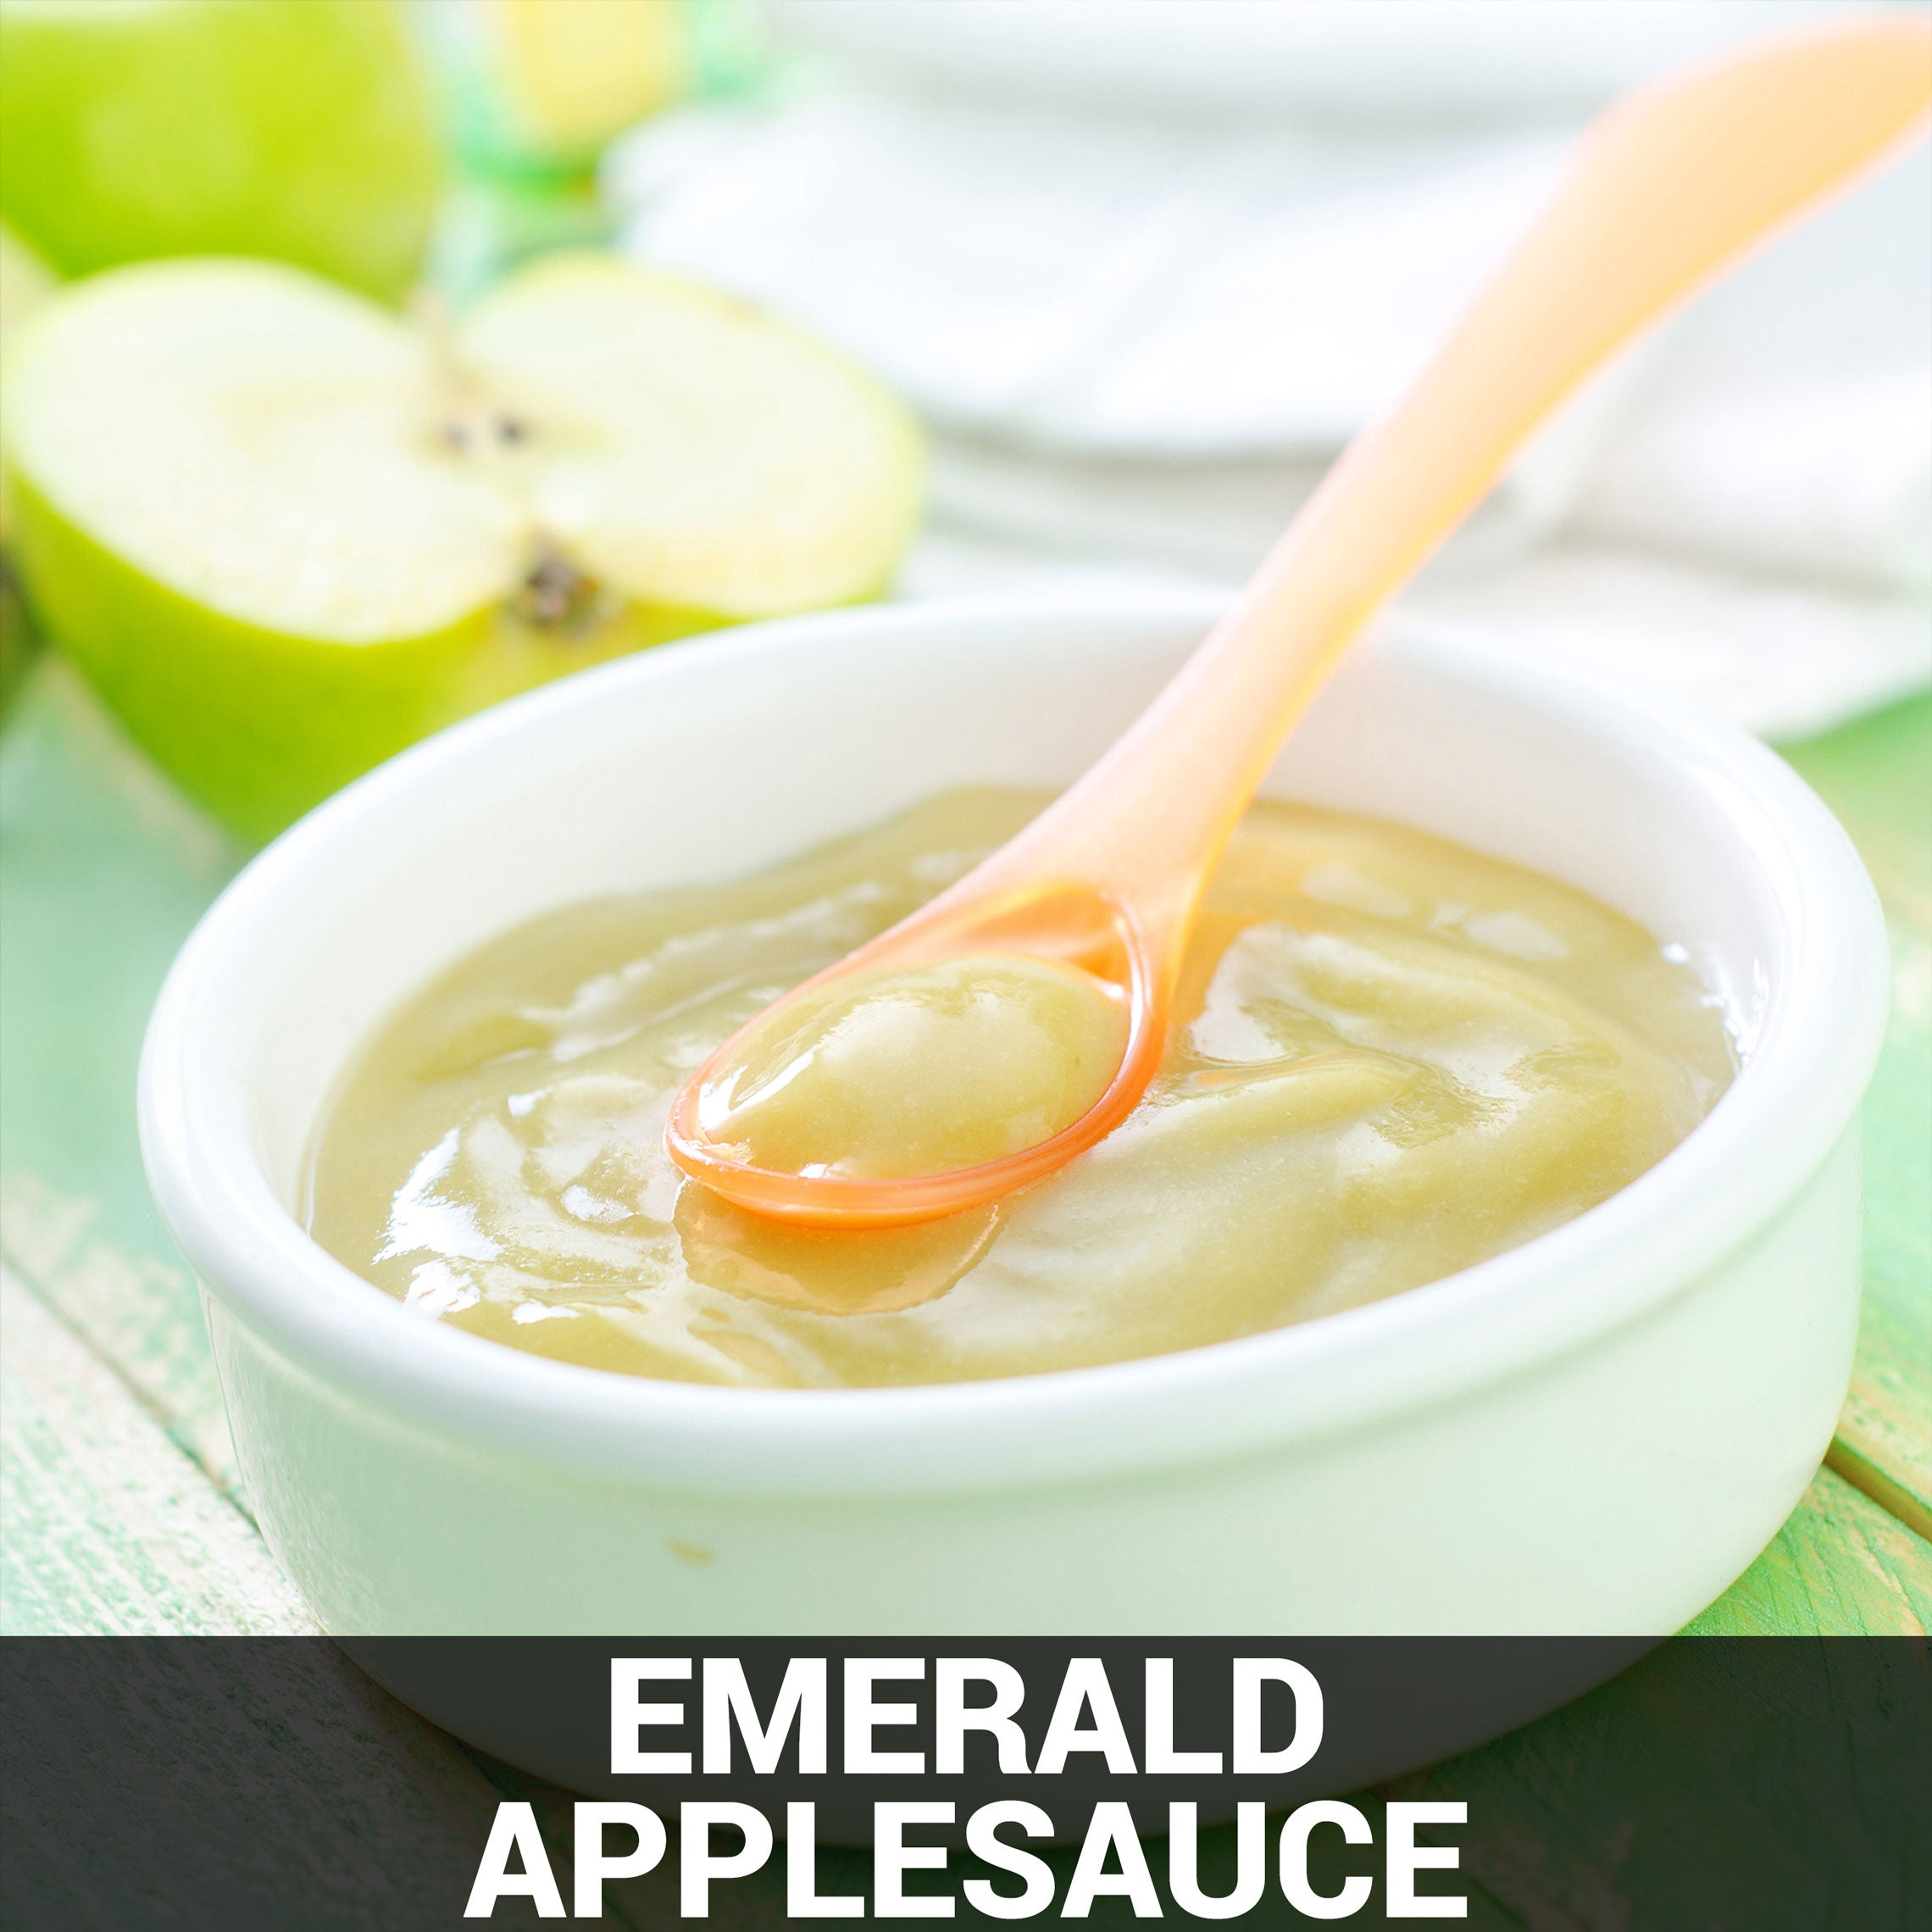 Emerald Applesauce Recipe - Foods Alive